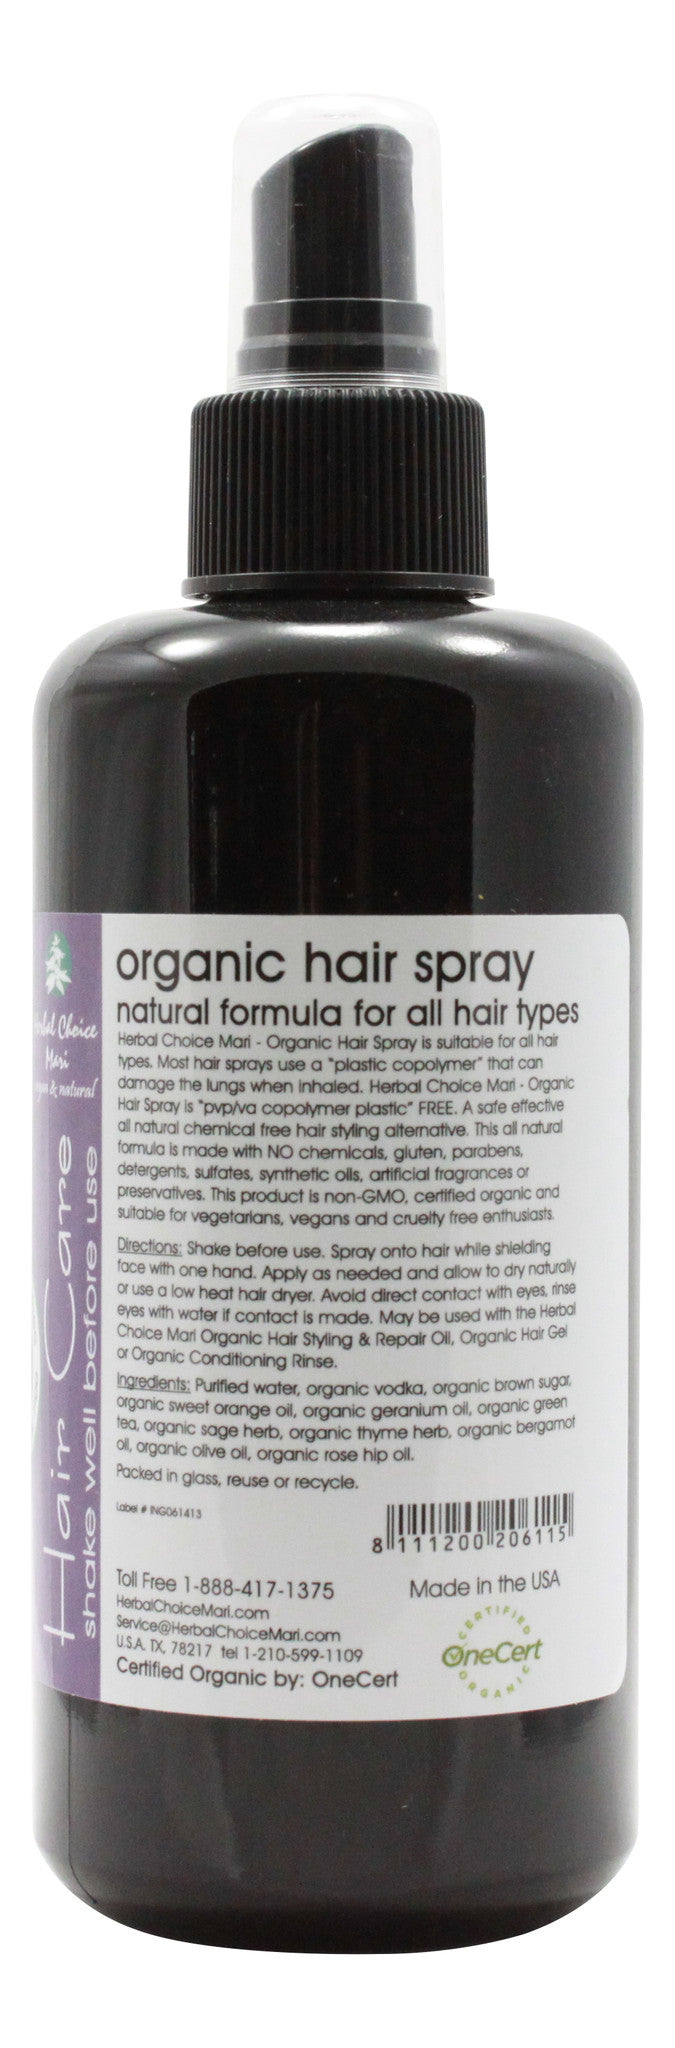 Organic Hair Spray - Style and Hold - 6.8 oz Bottle - Info